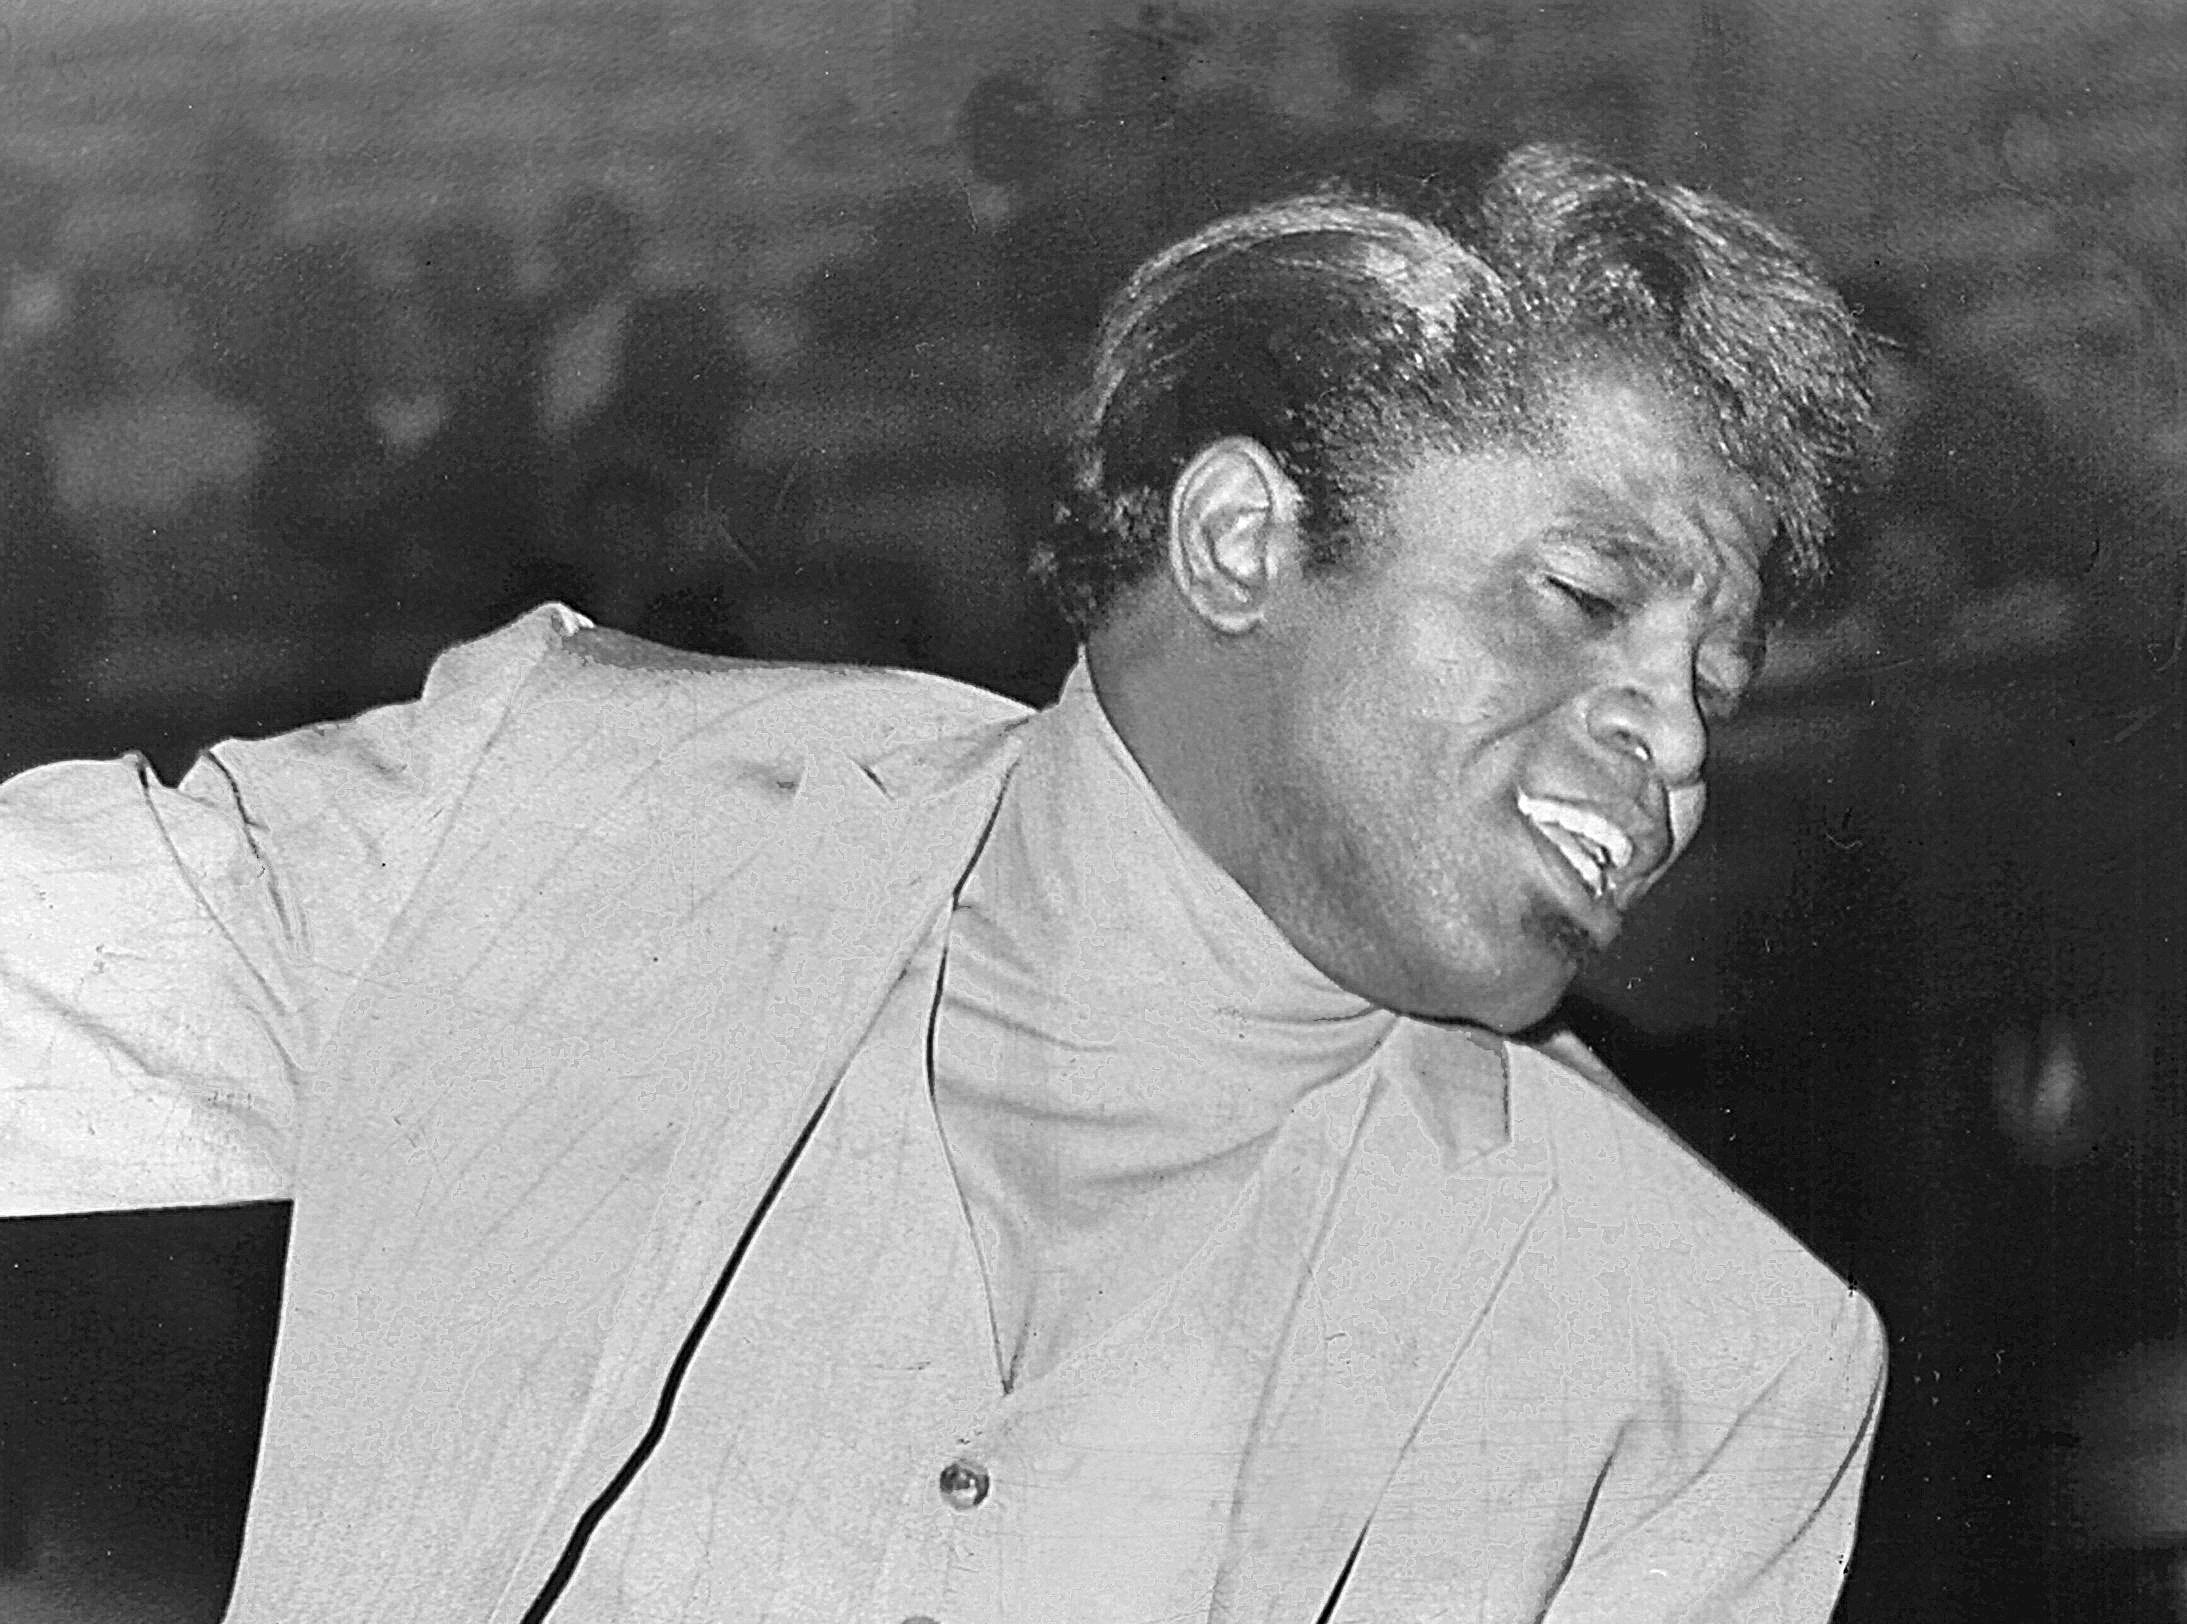 James Brown performs before an audience of 11,733 at the Mid-South Coliseum on 24 Aug 1968. The Augusta, Georgia, singer sang his way to the top of the musical heap as Soul Brother No. 1.